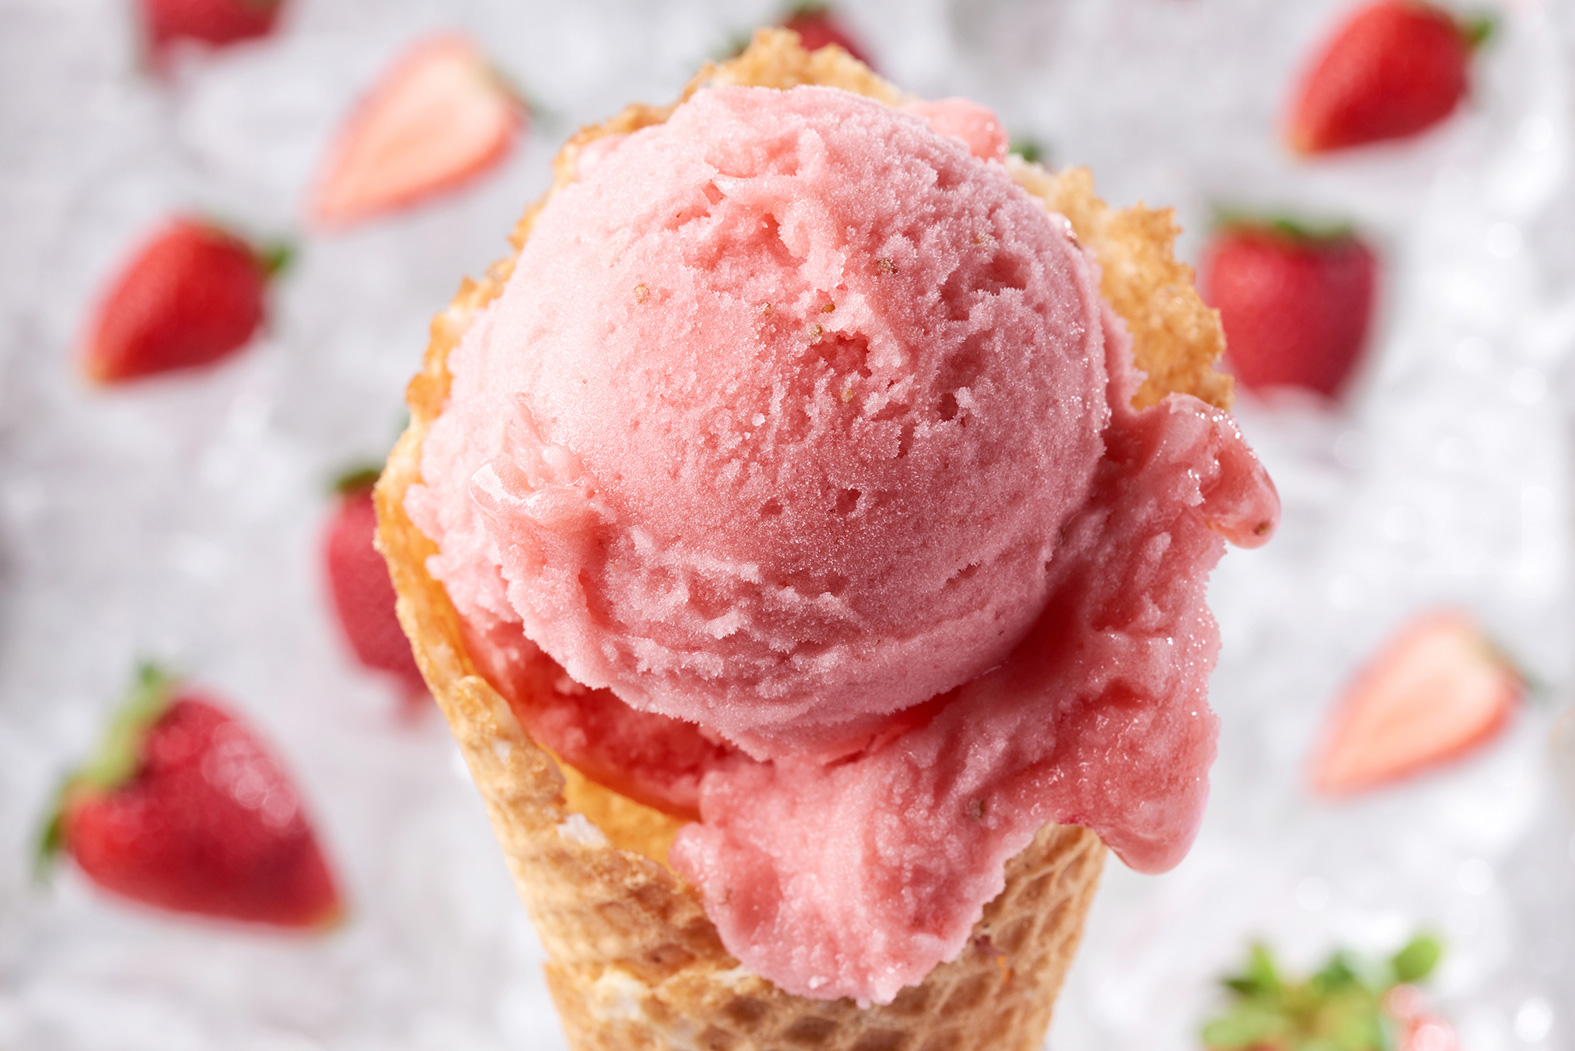 vivoli-il-gelato-disney-springs-marketing-food-sweets-photography-strawberry-sorbetto-cone